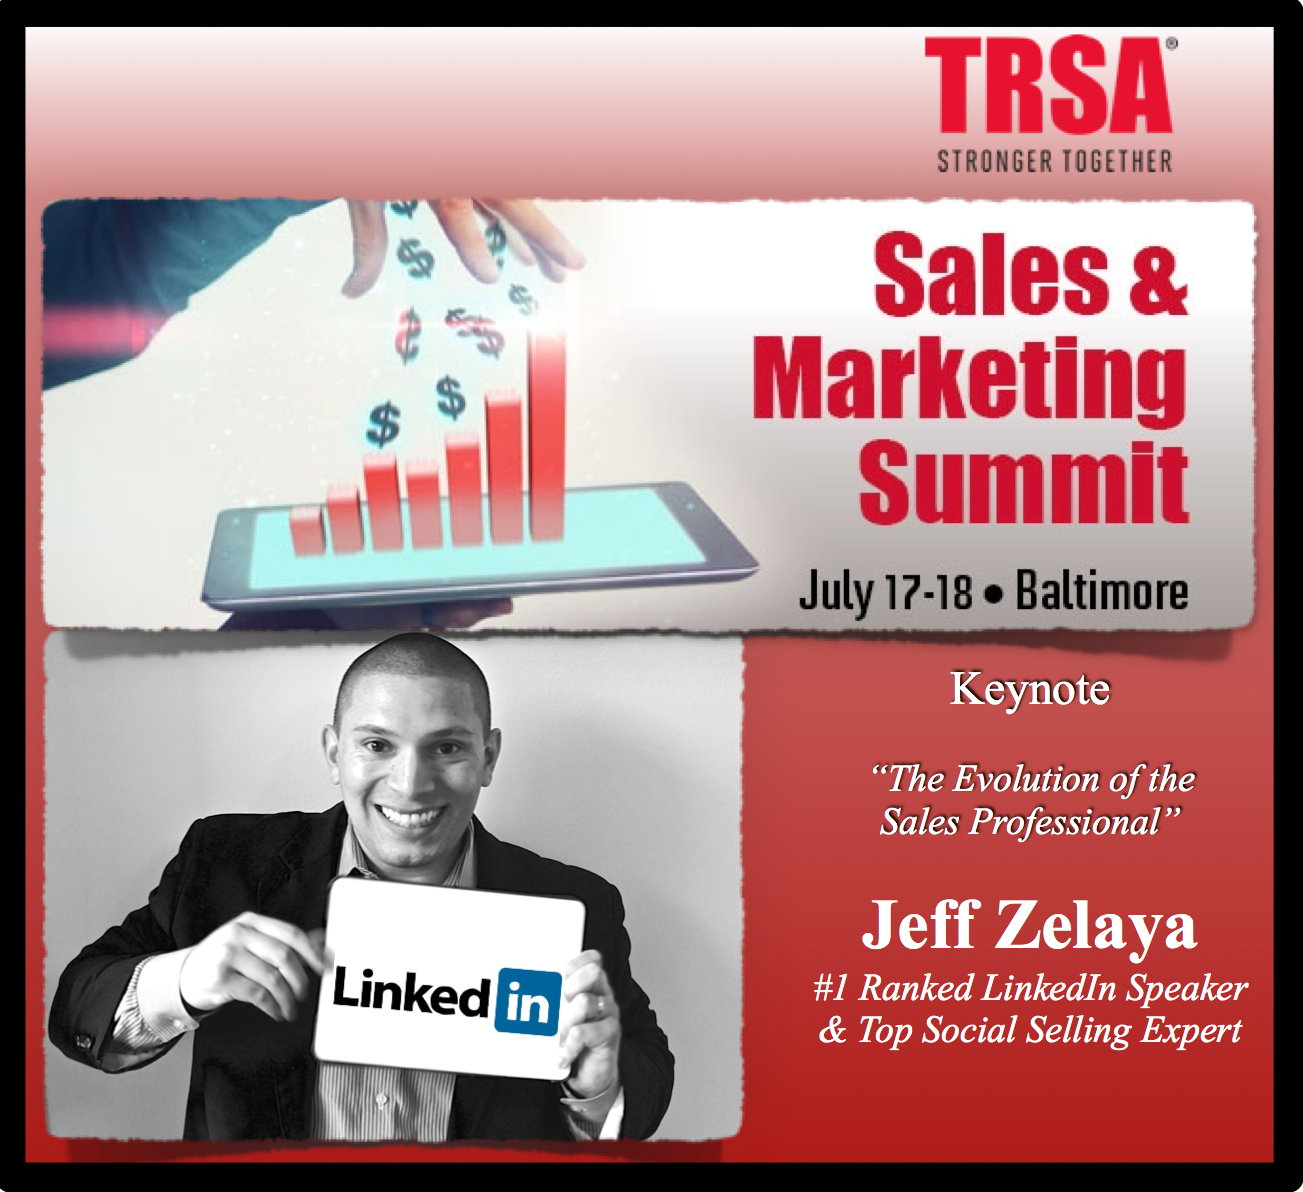 Keynote Social Selling Speaker at TRSA